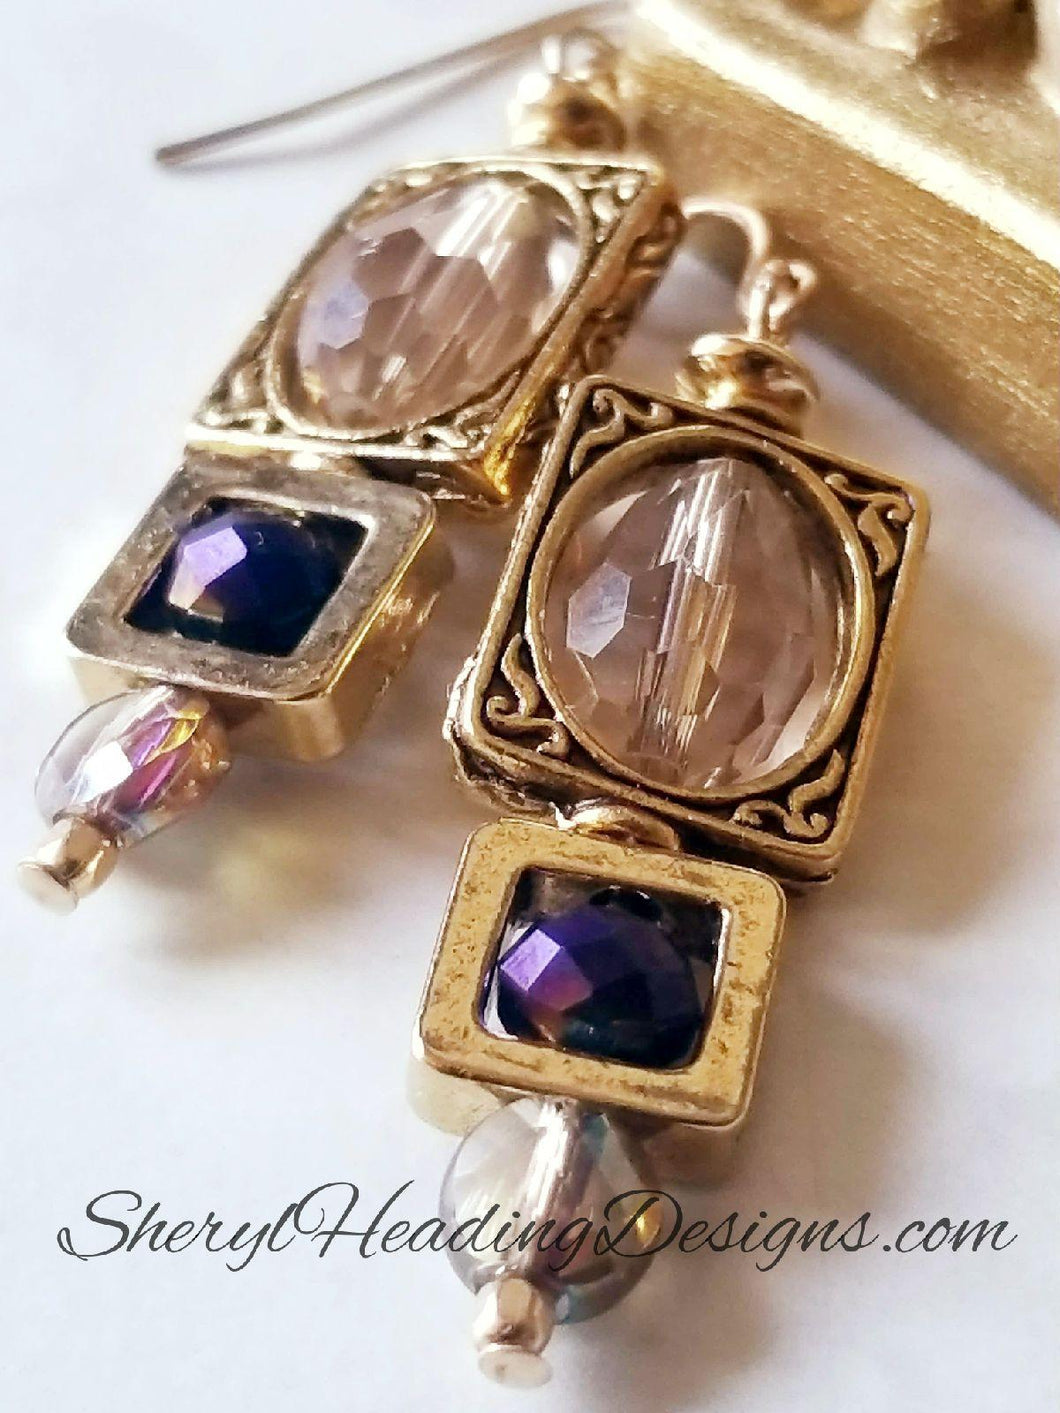 Antique Drop and Dangle Crystal Treasure Earrings - Sheryl Heading Designs